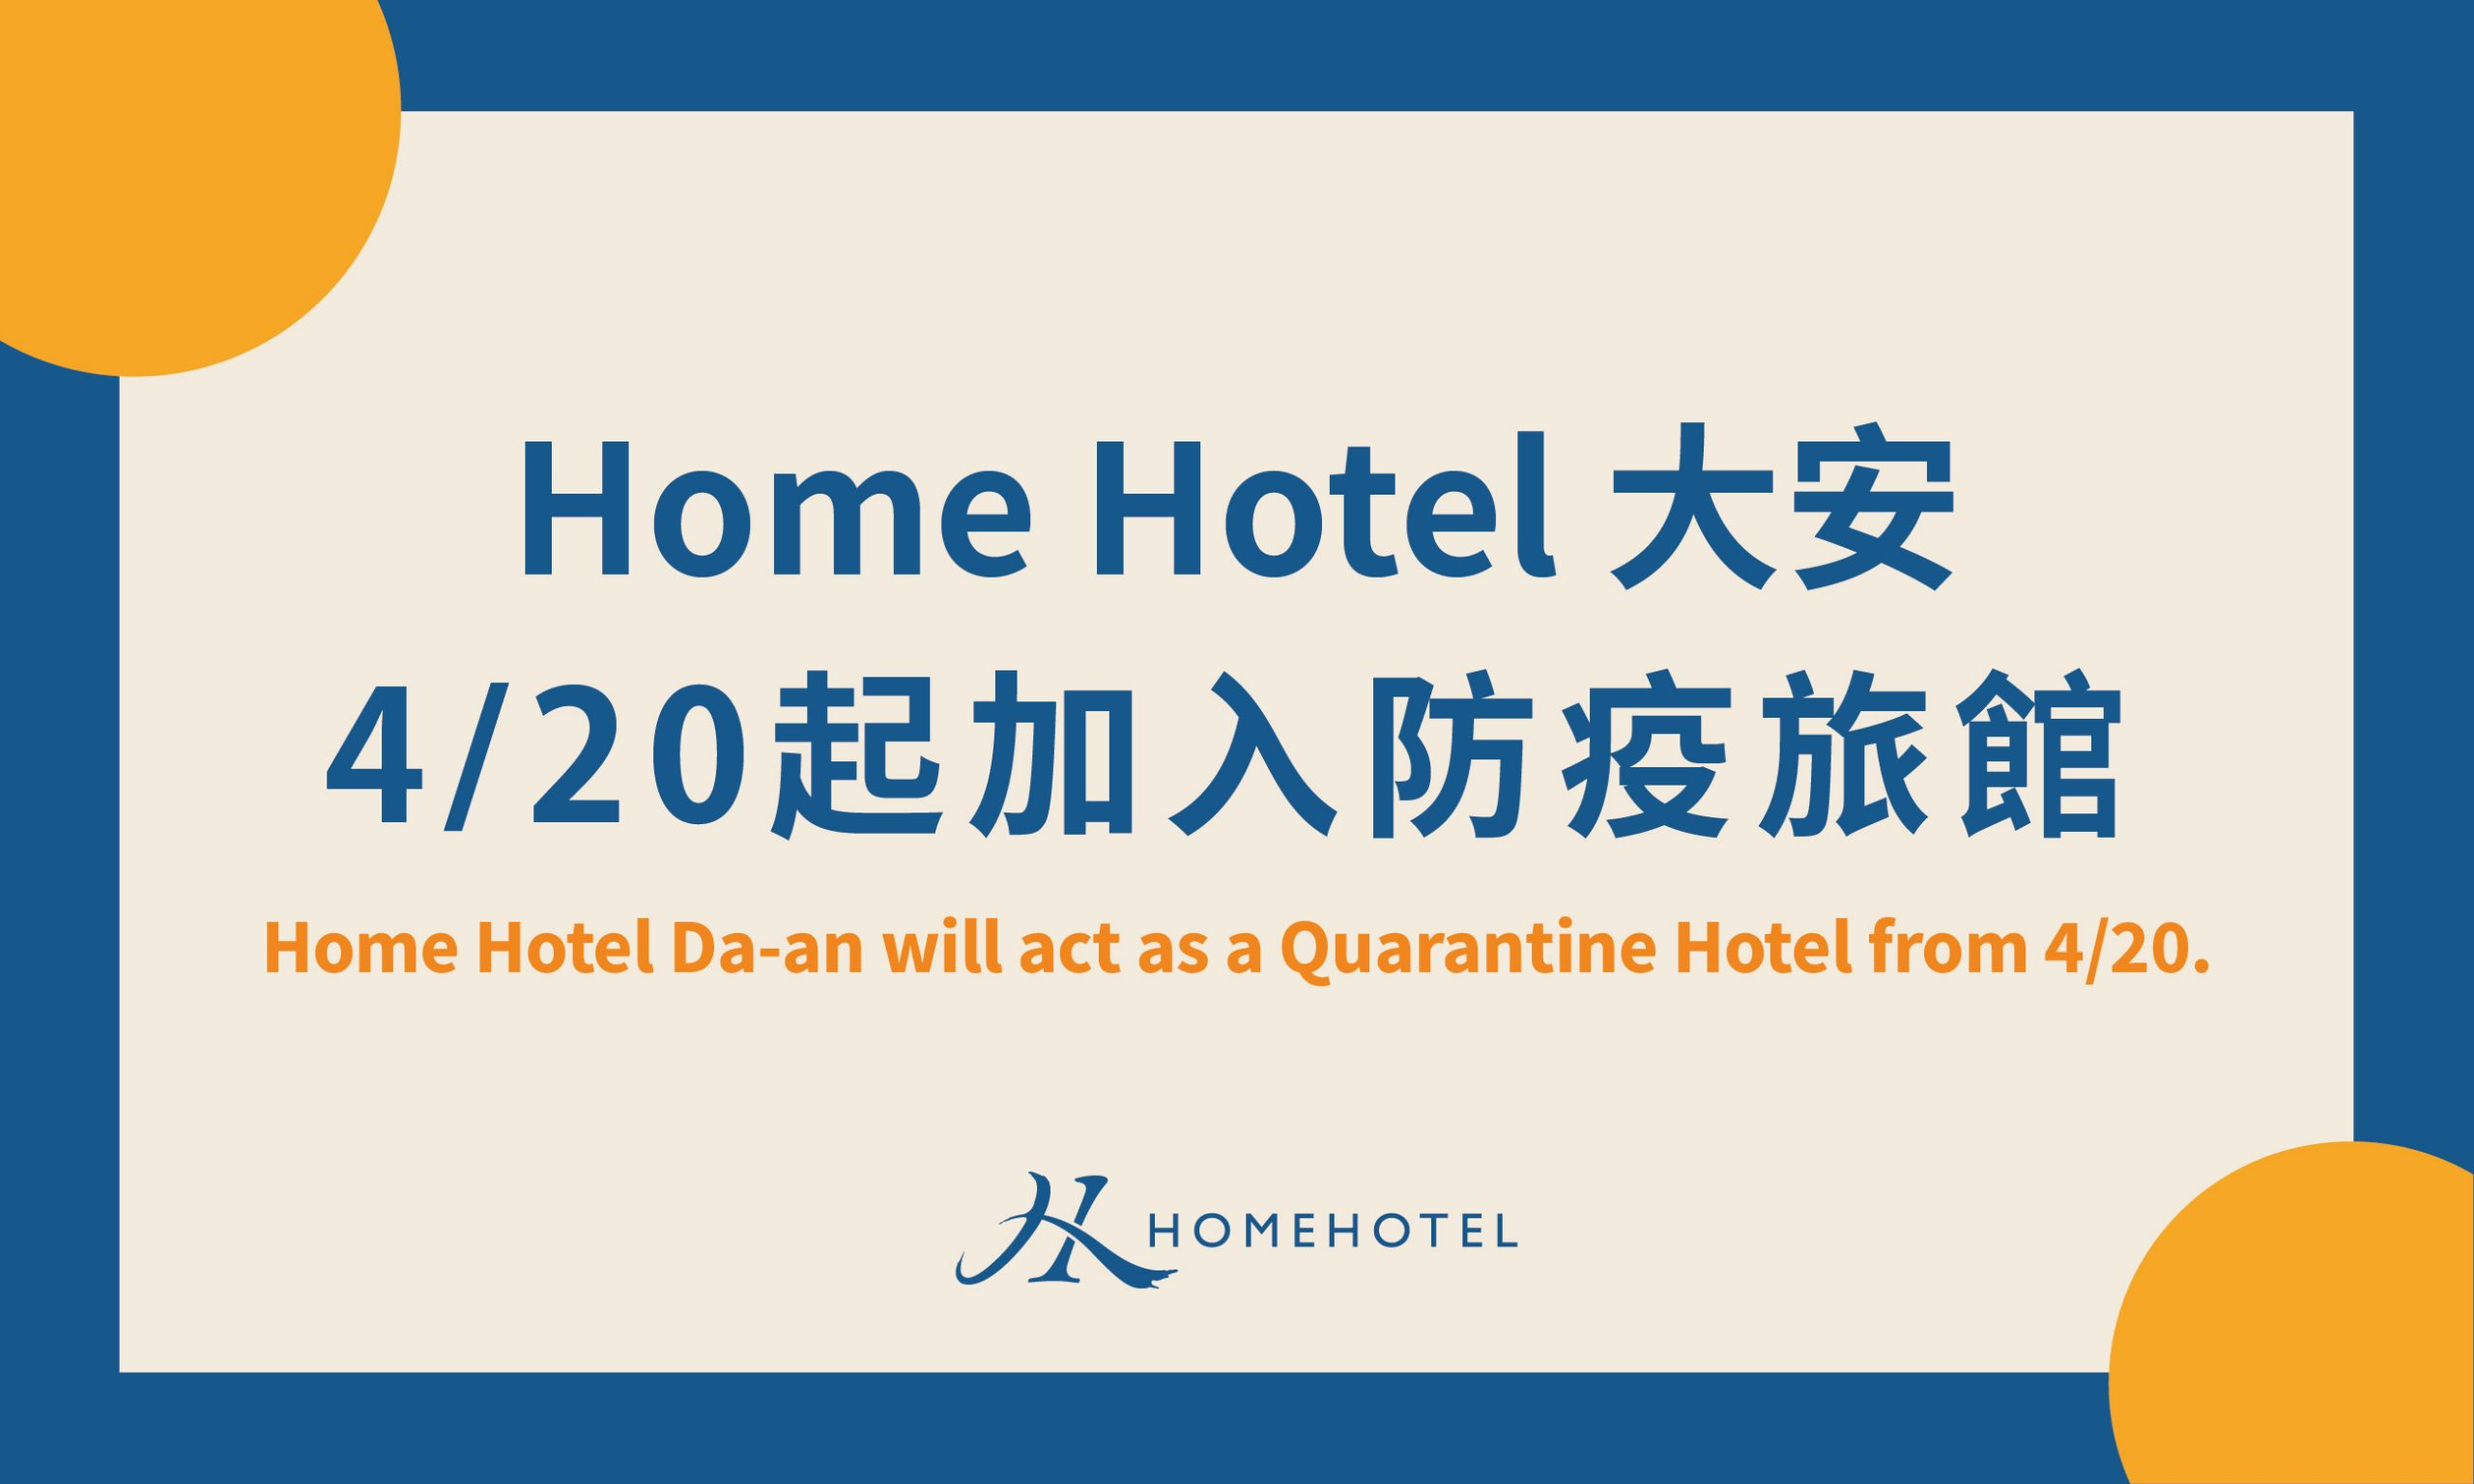 Home Hotel Daan become a Quarantine Hotel from 2020/4/20-2021/4/20